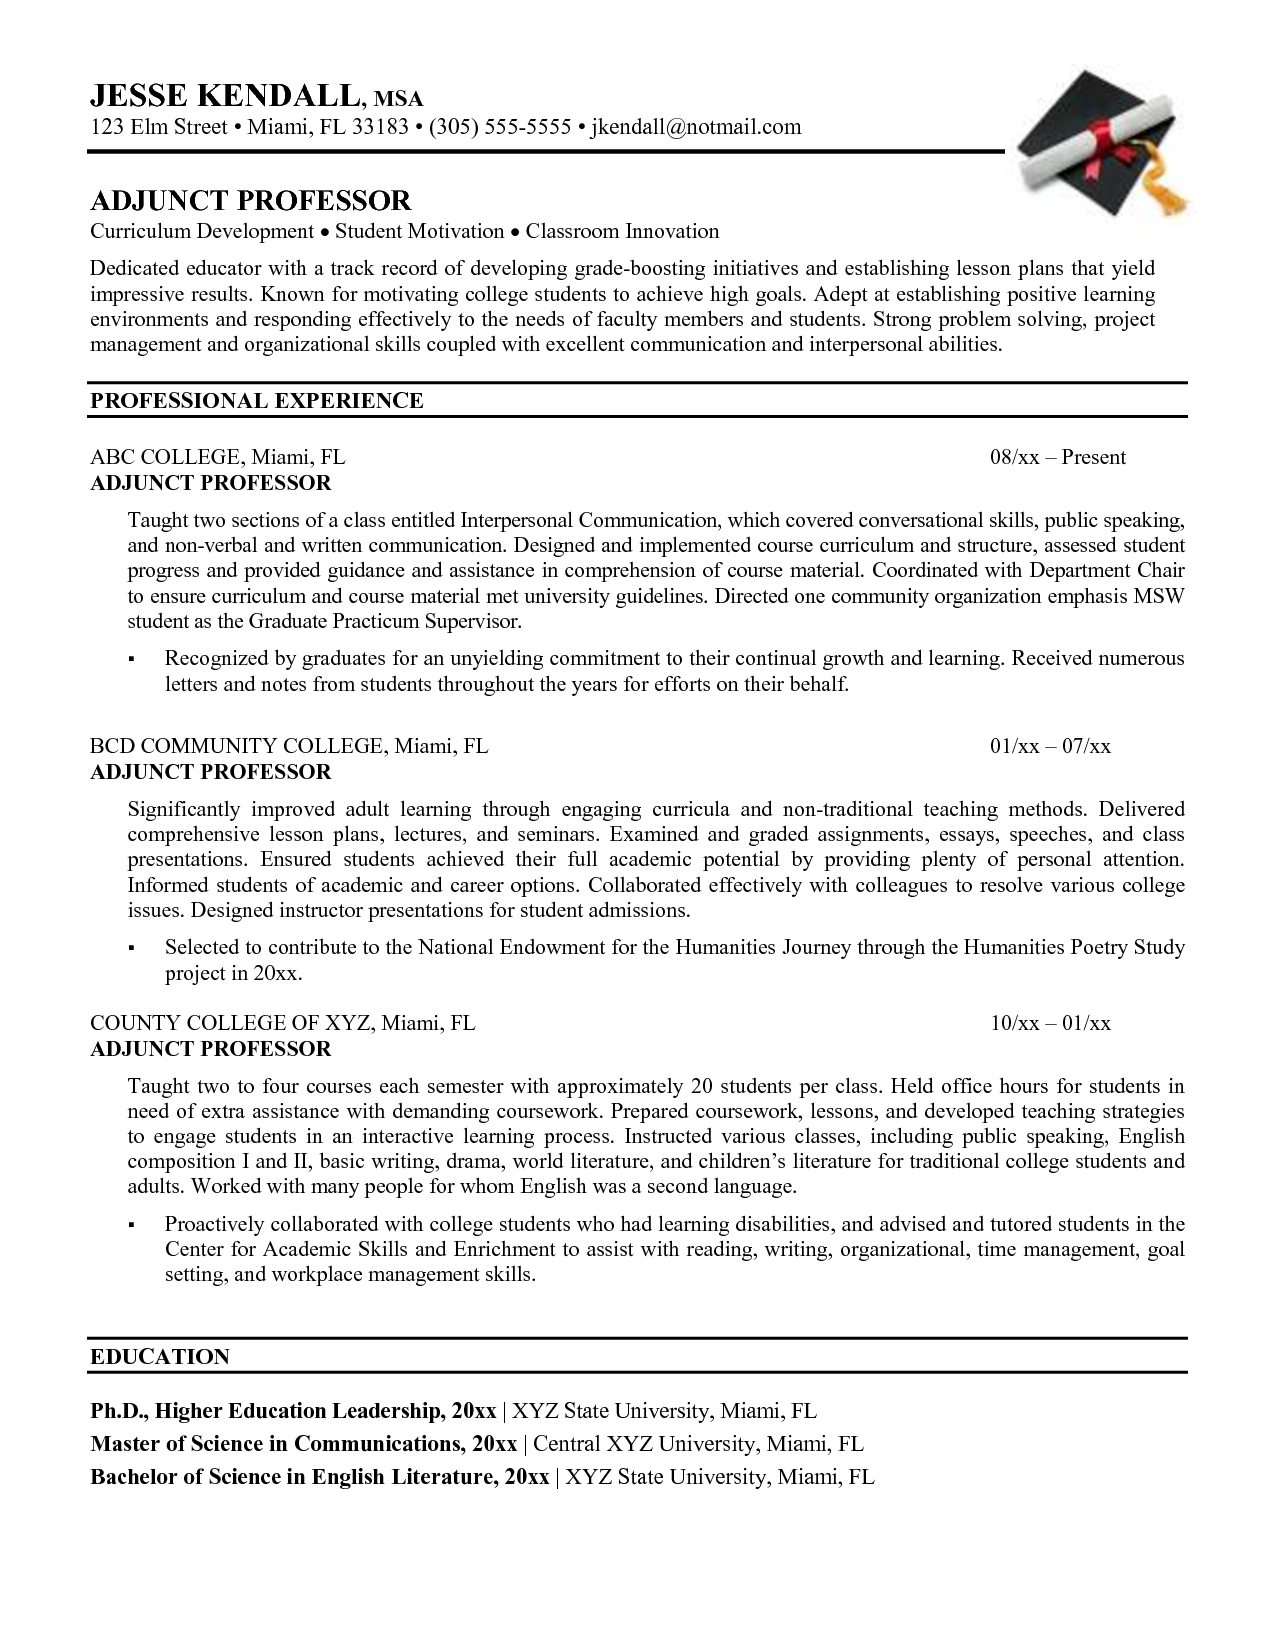 Captivating Sample Resume For Faculty Position Engineering Adjunct Professor Resume |  Best Template Collection